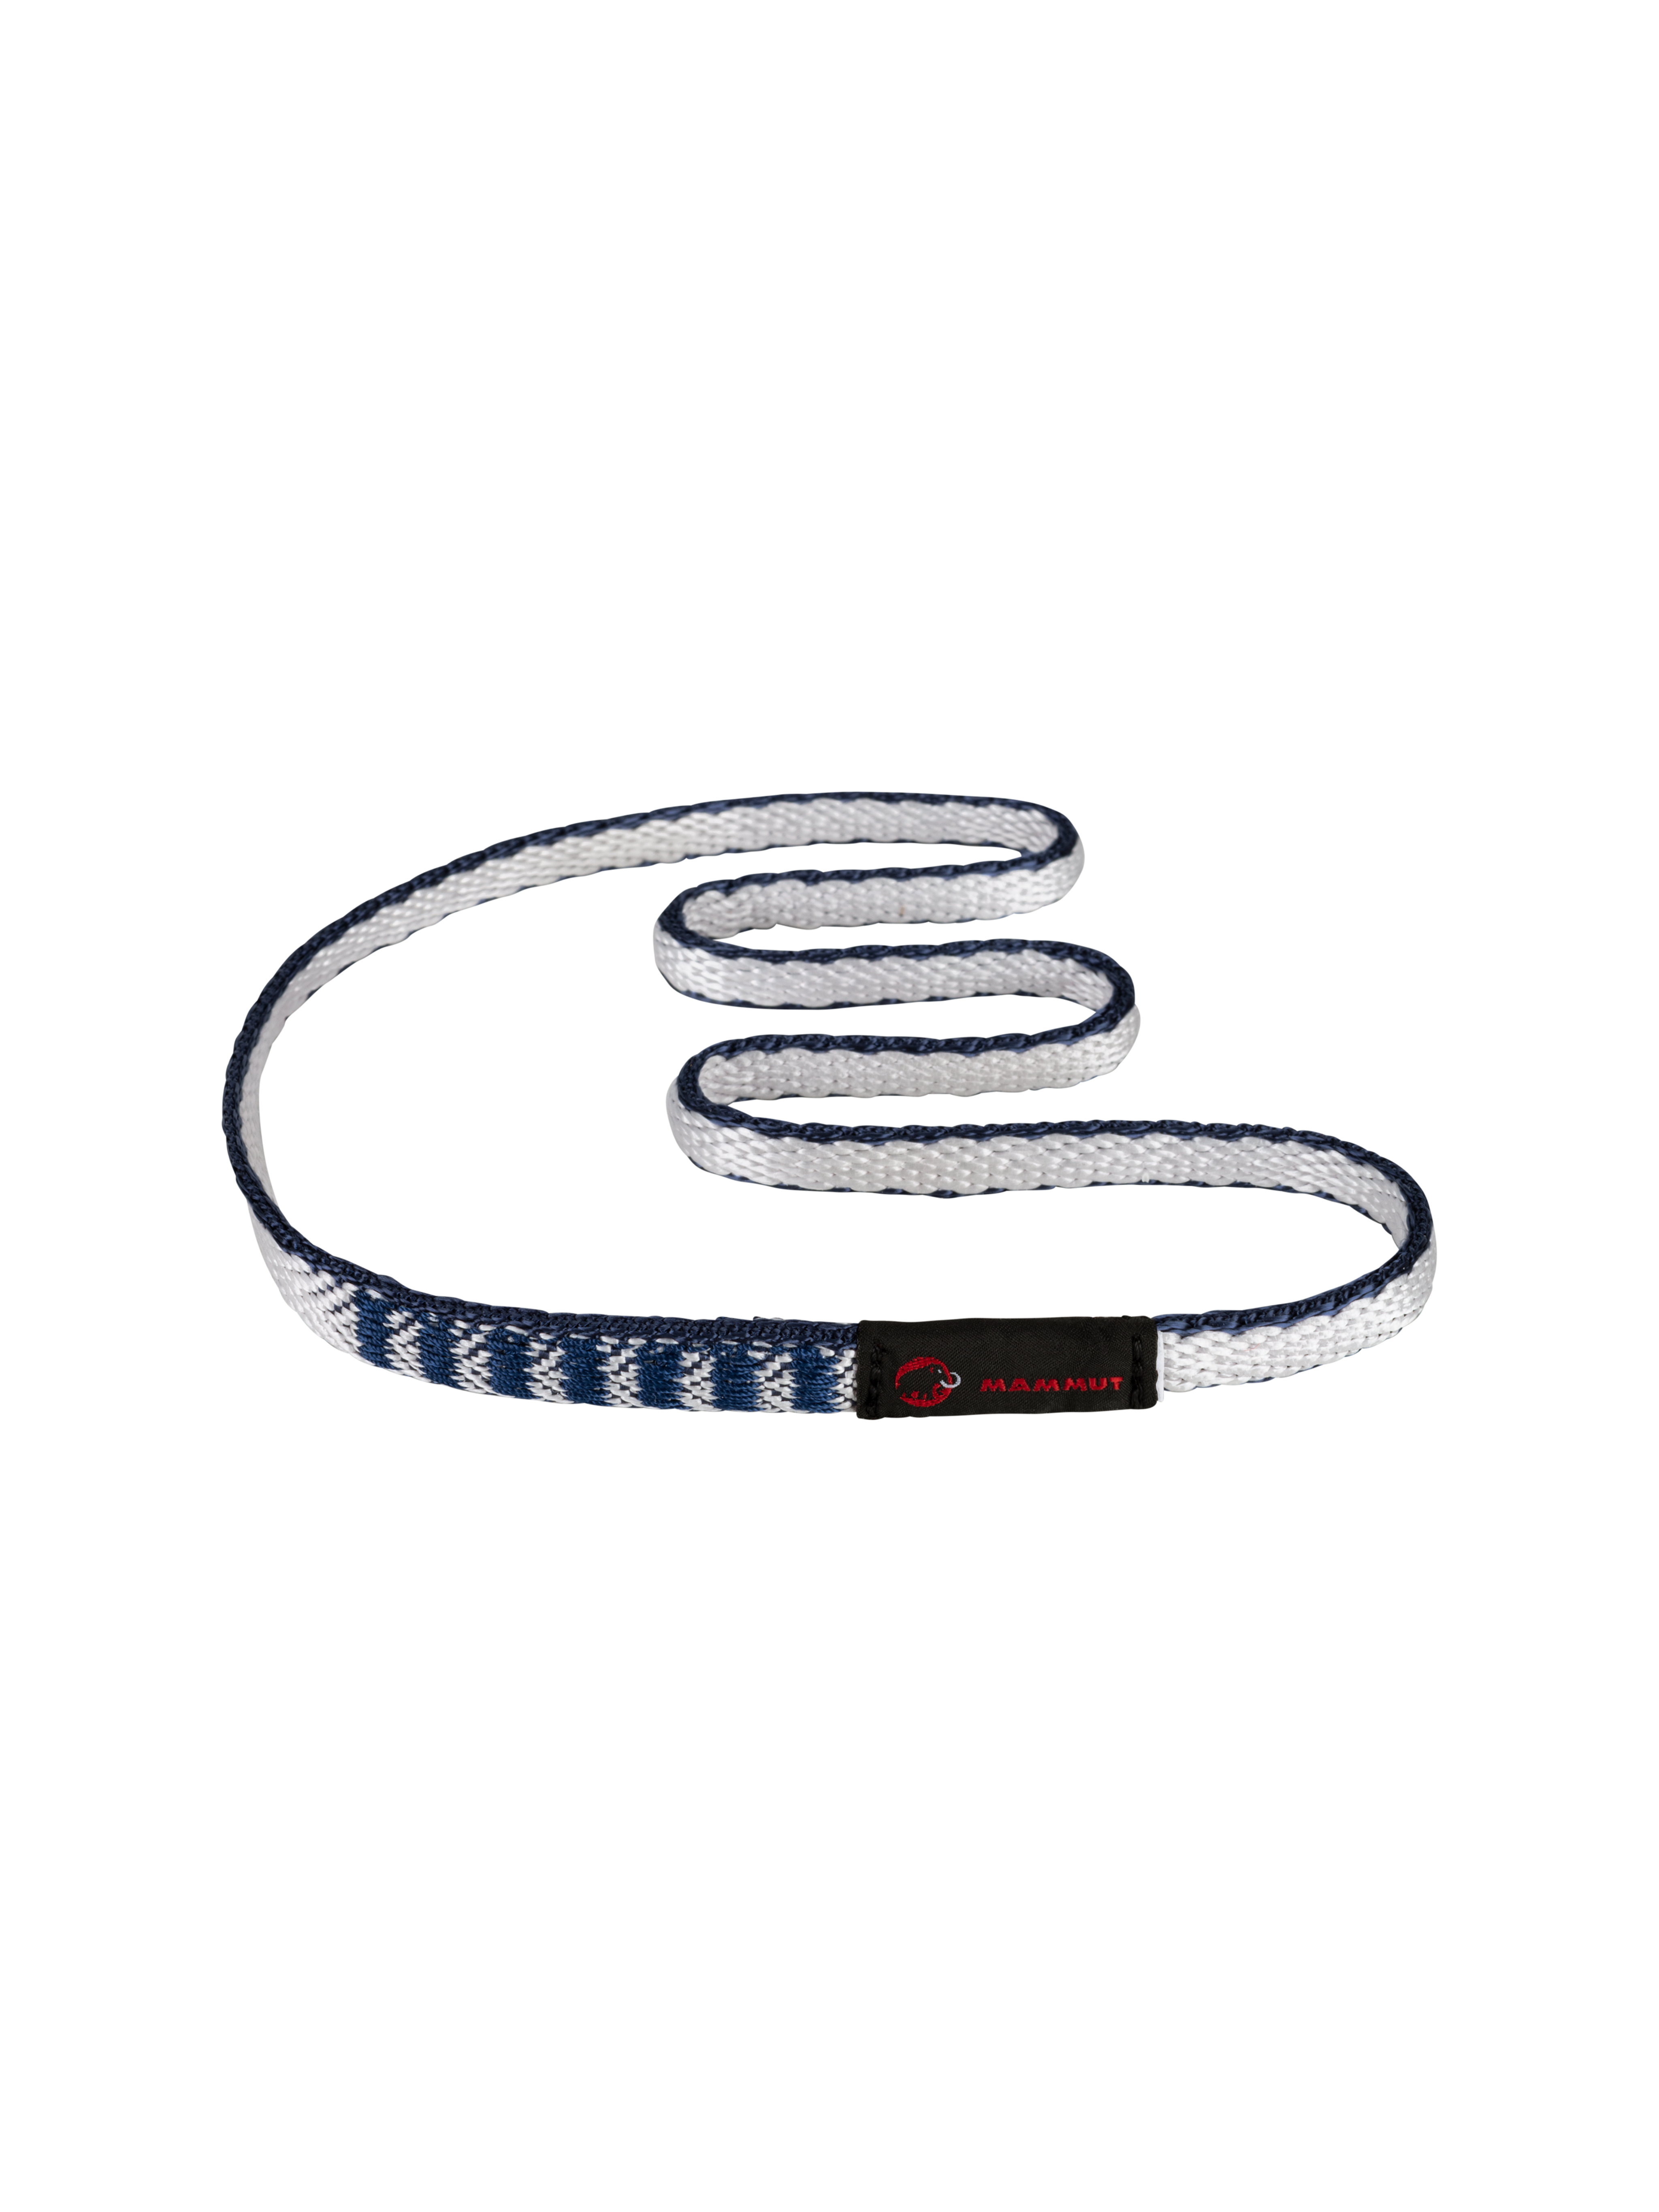 Contact Sling 8.0 product image